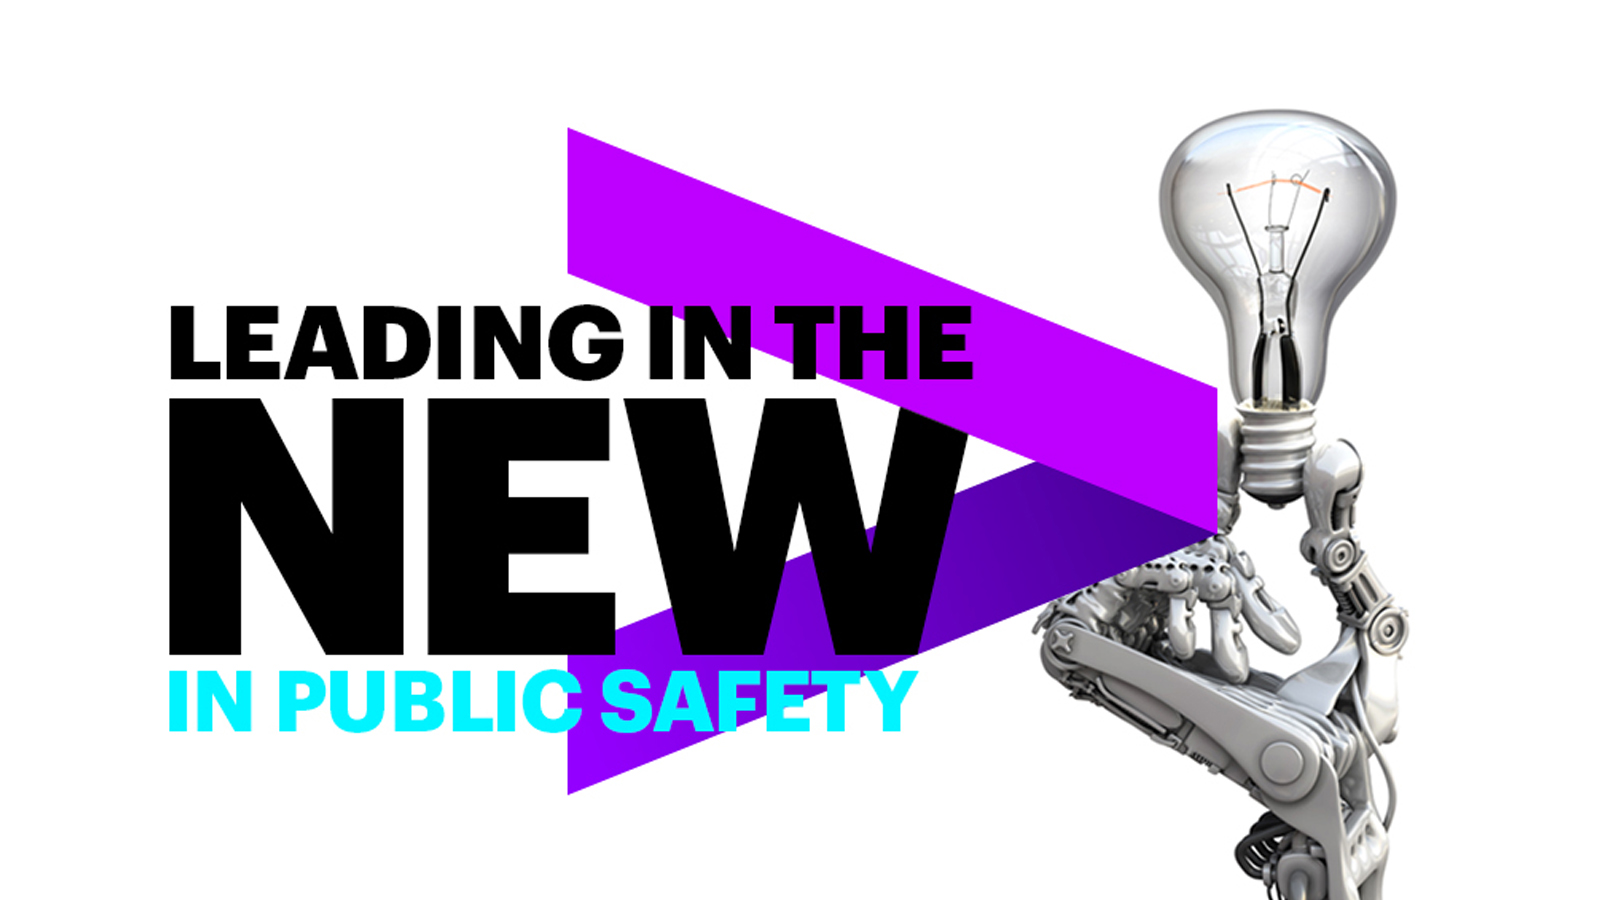 Leading in the new in public safety